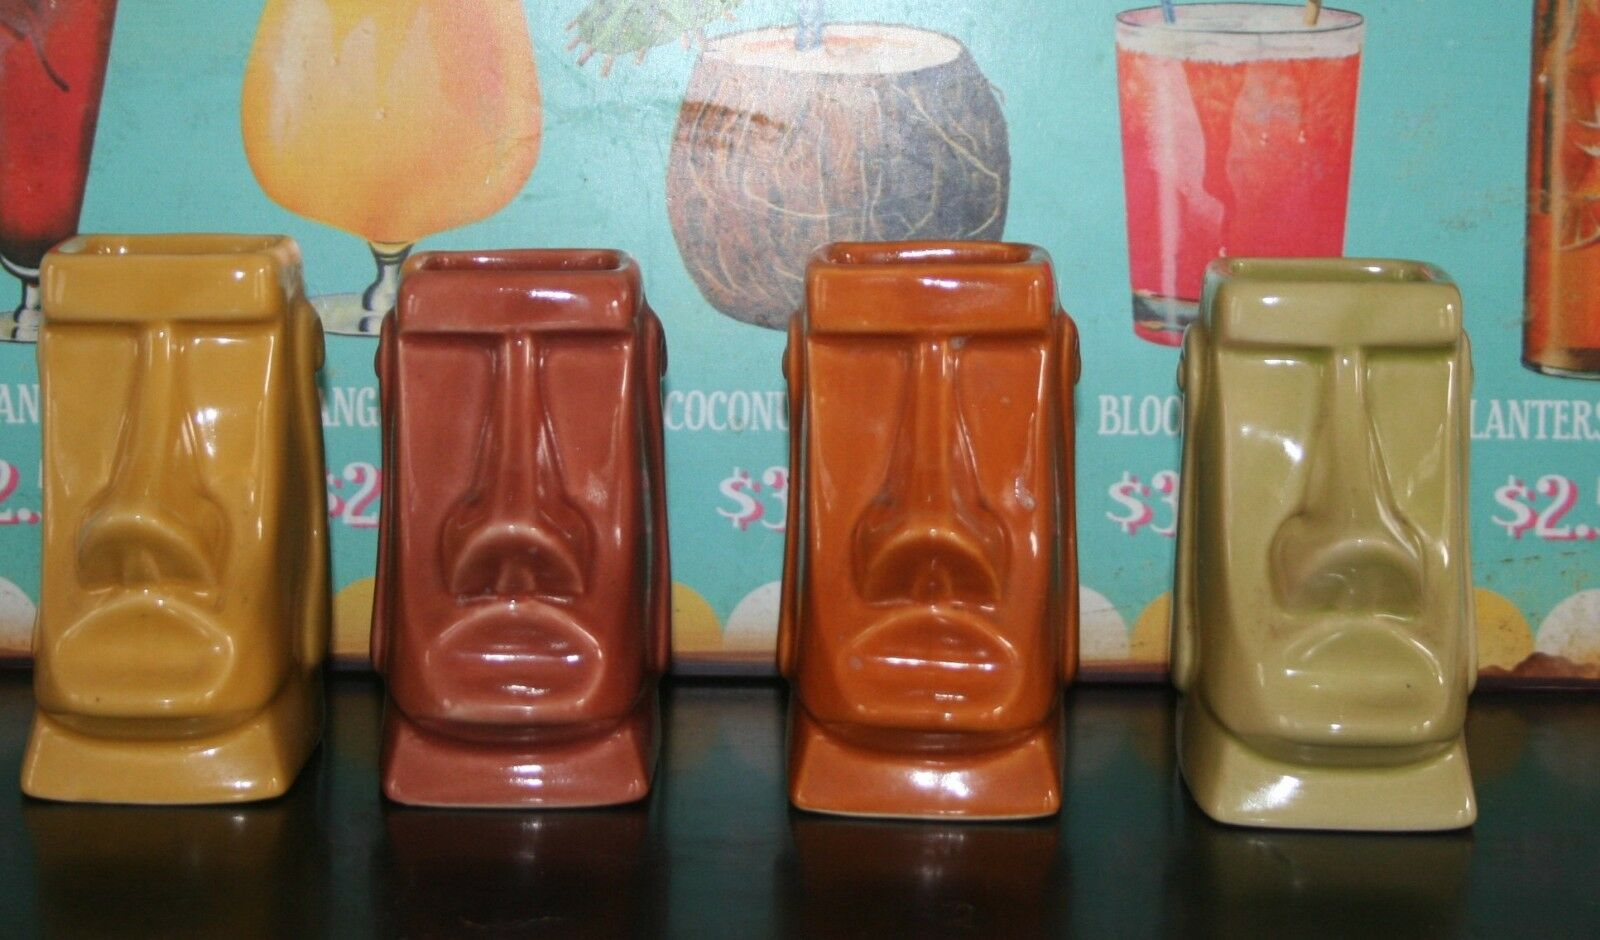 Tiki mug Moaï par Derek originaux 2006   Tikifarm usa rare collection lot de 4